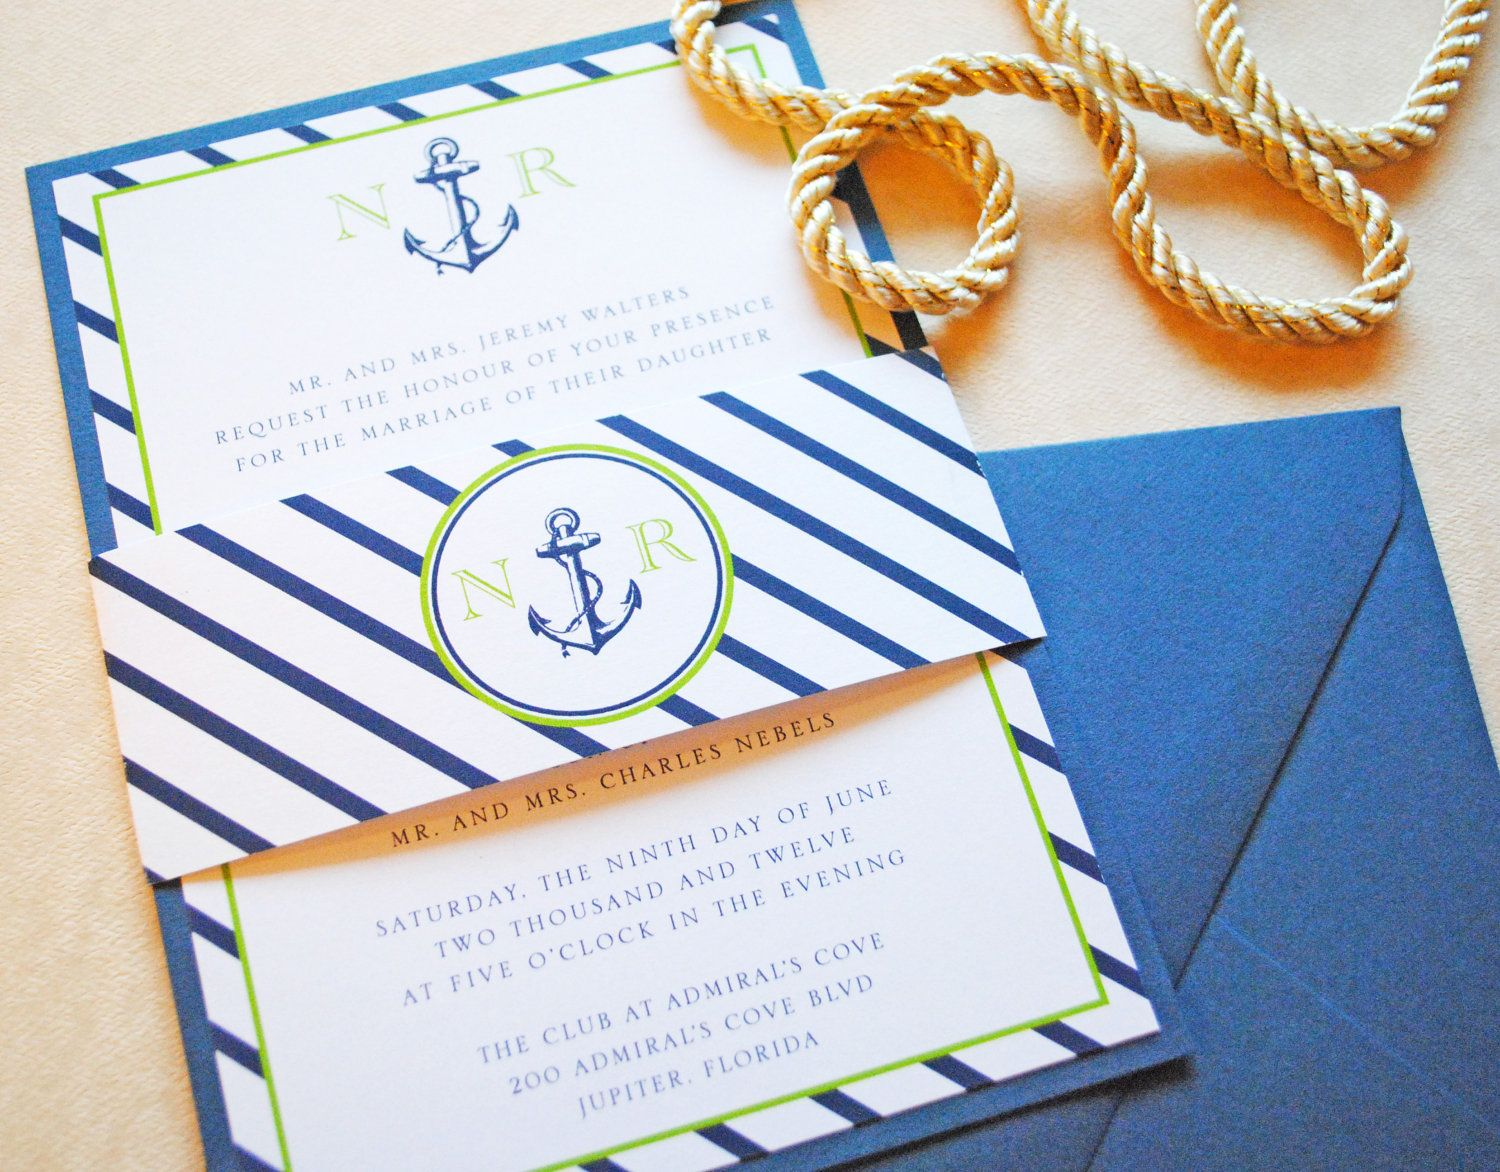 Nautical Wedding Invitation Nautical Wedding Invitations Nautical Theme Wedding Invitations Nautical Wedding Theme